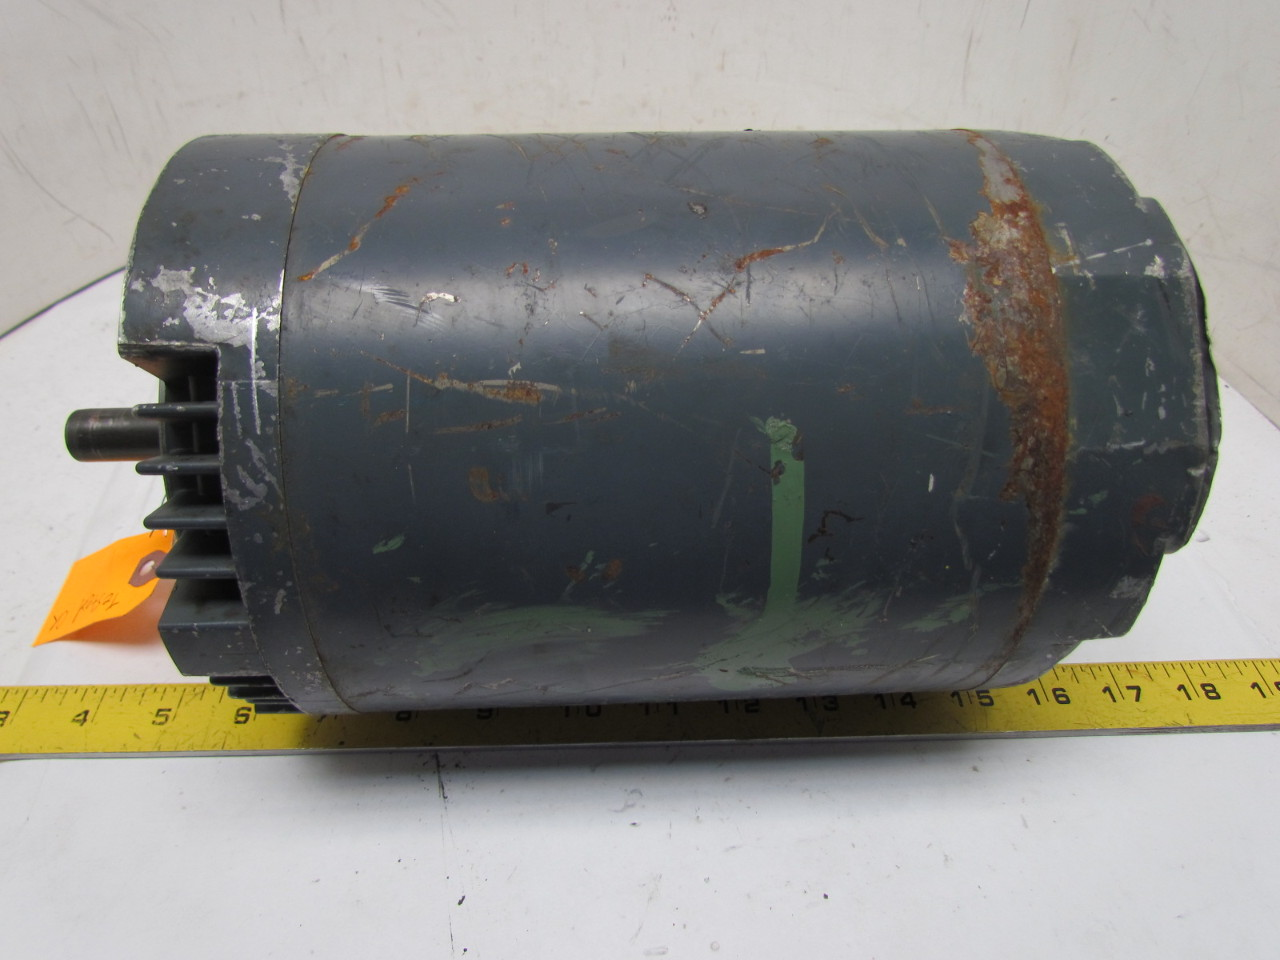 Westinghouse 311p134a 1 2 hp electric motor 230 460v 3ph for 1 rpm electric motor